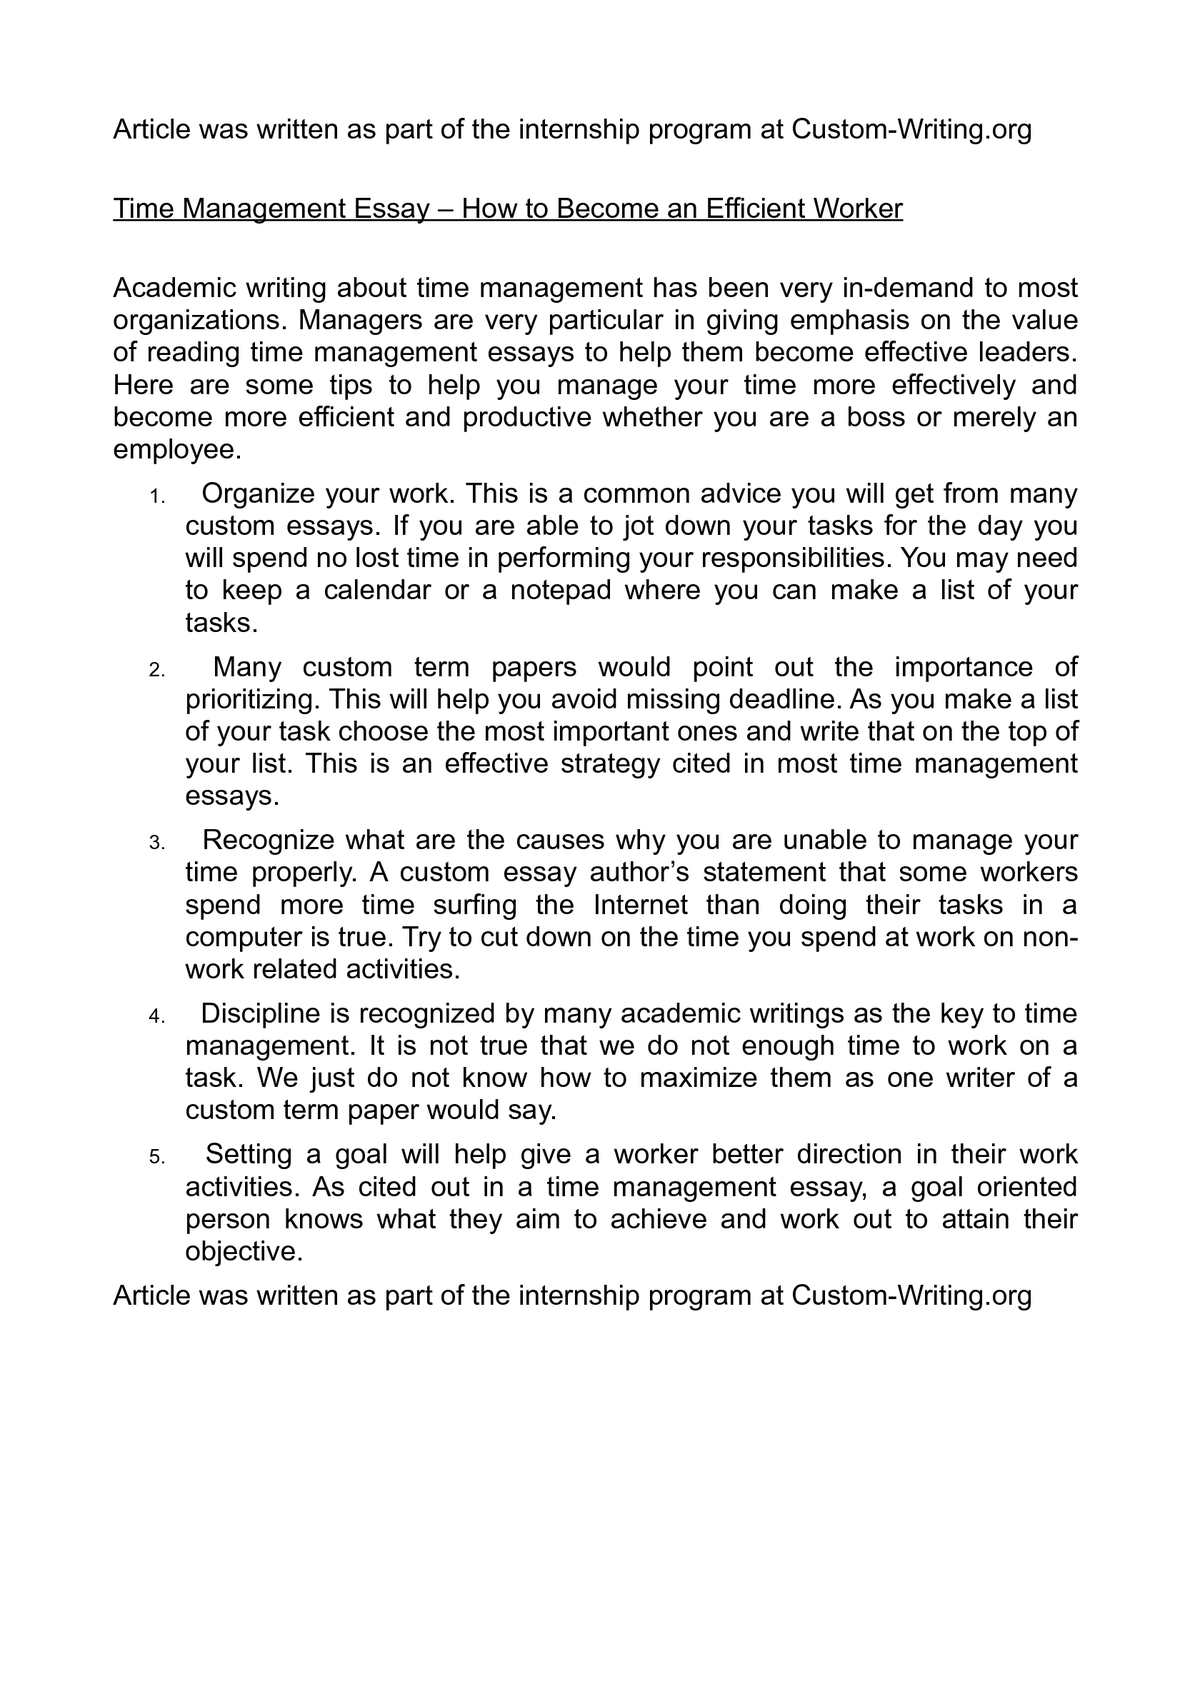 Essay On Fire Prevention  Help Essay also An Inspector Calls Essay Questions Calamo  Time Management Essay  How To Become An Efficient  First Class Essay